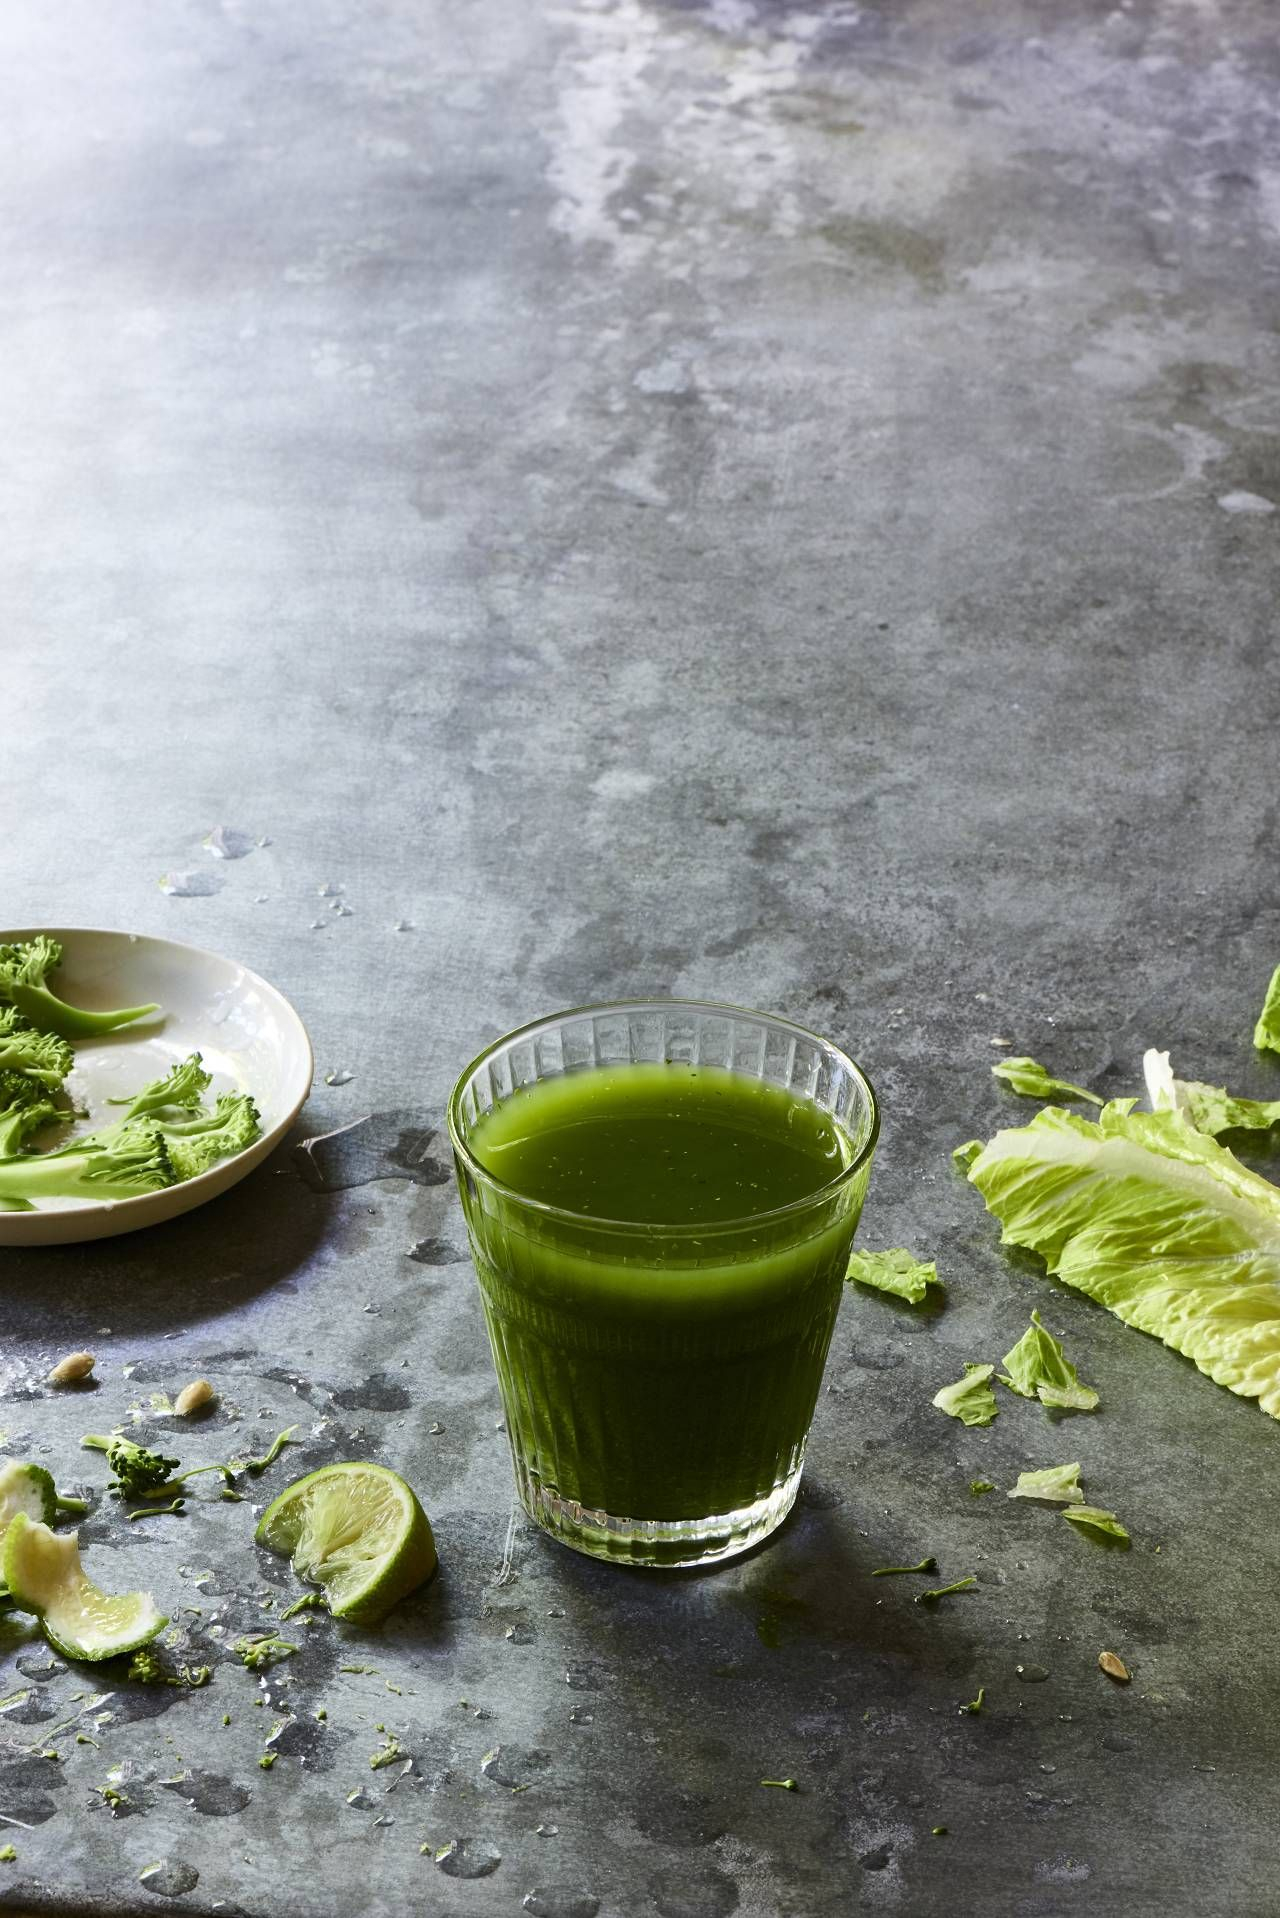 Lime Apple Spinach Romaine Broccoli Juice - The Blender Girl